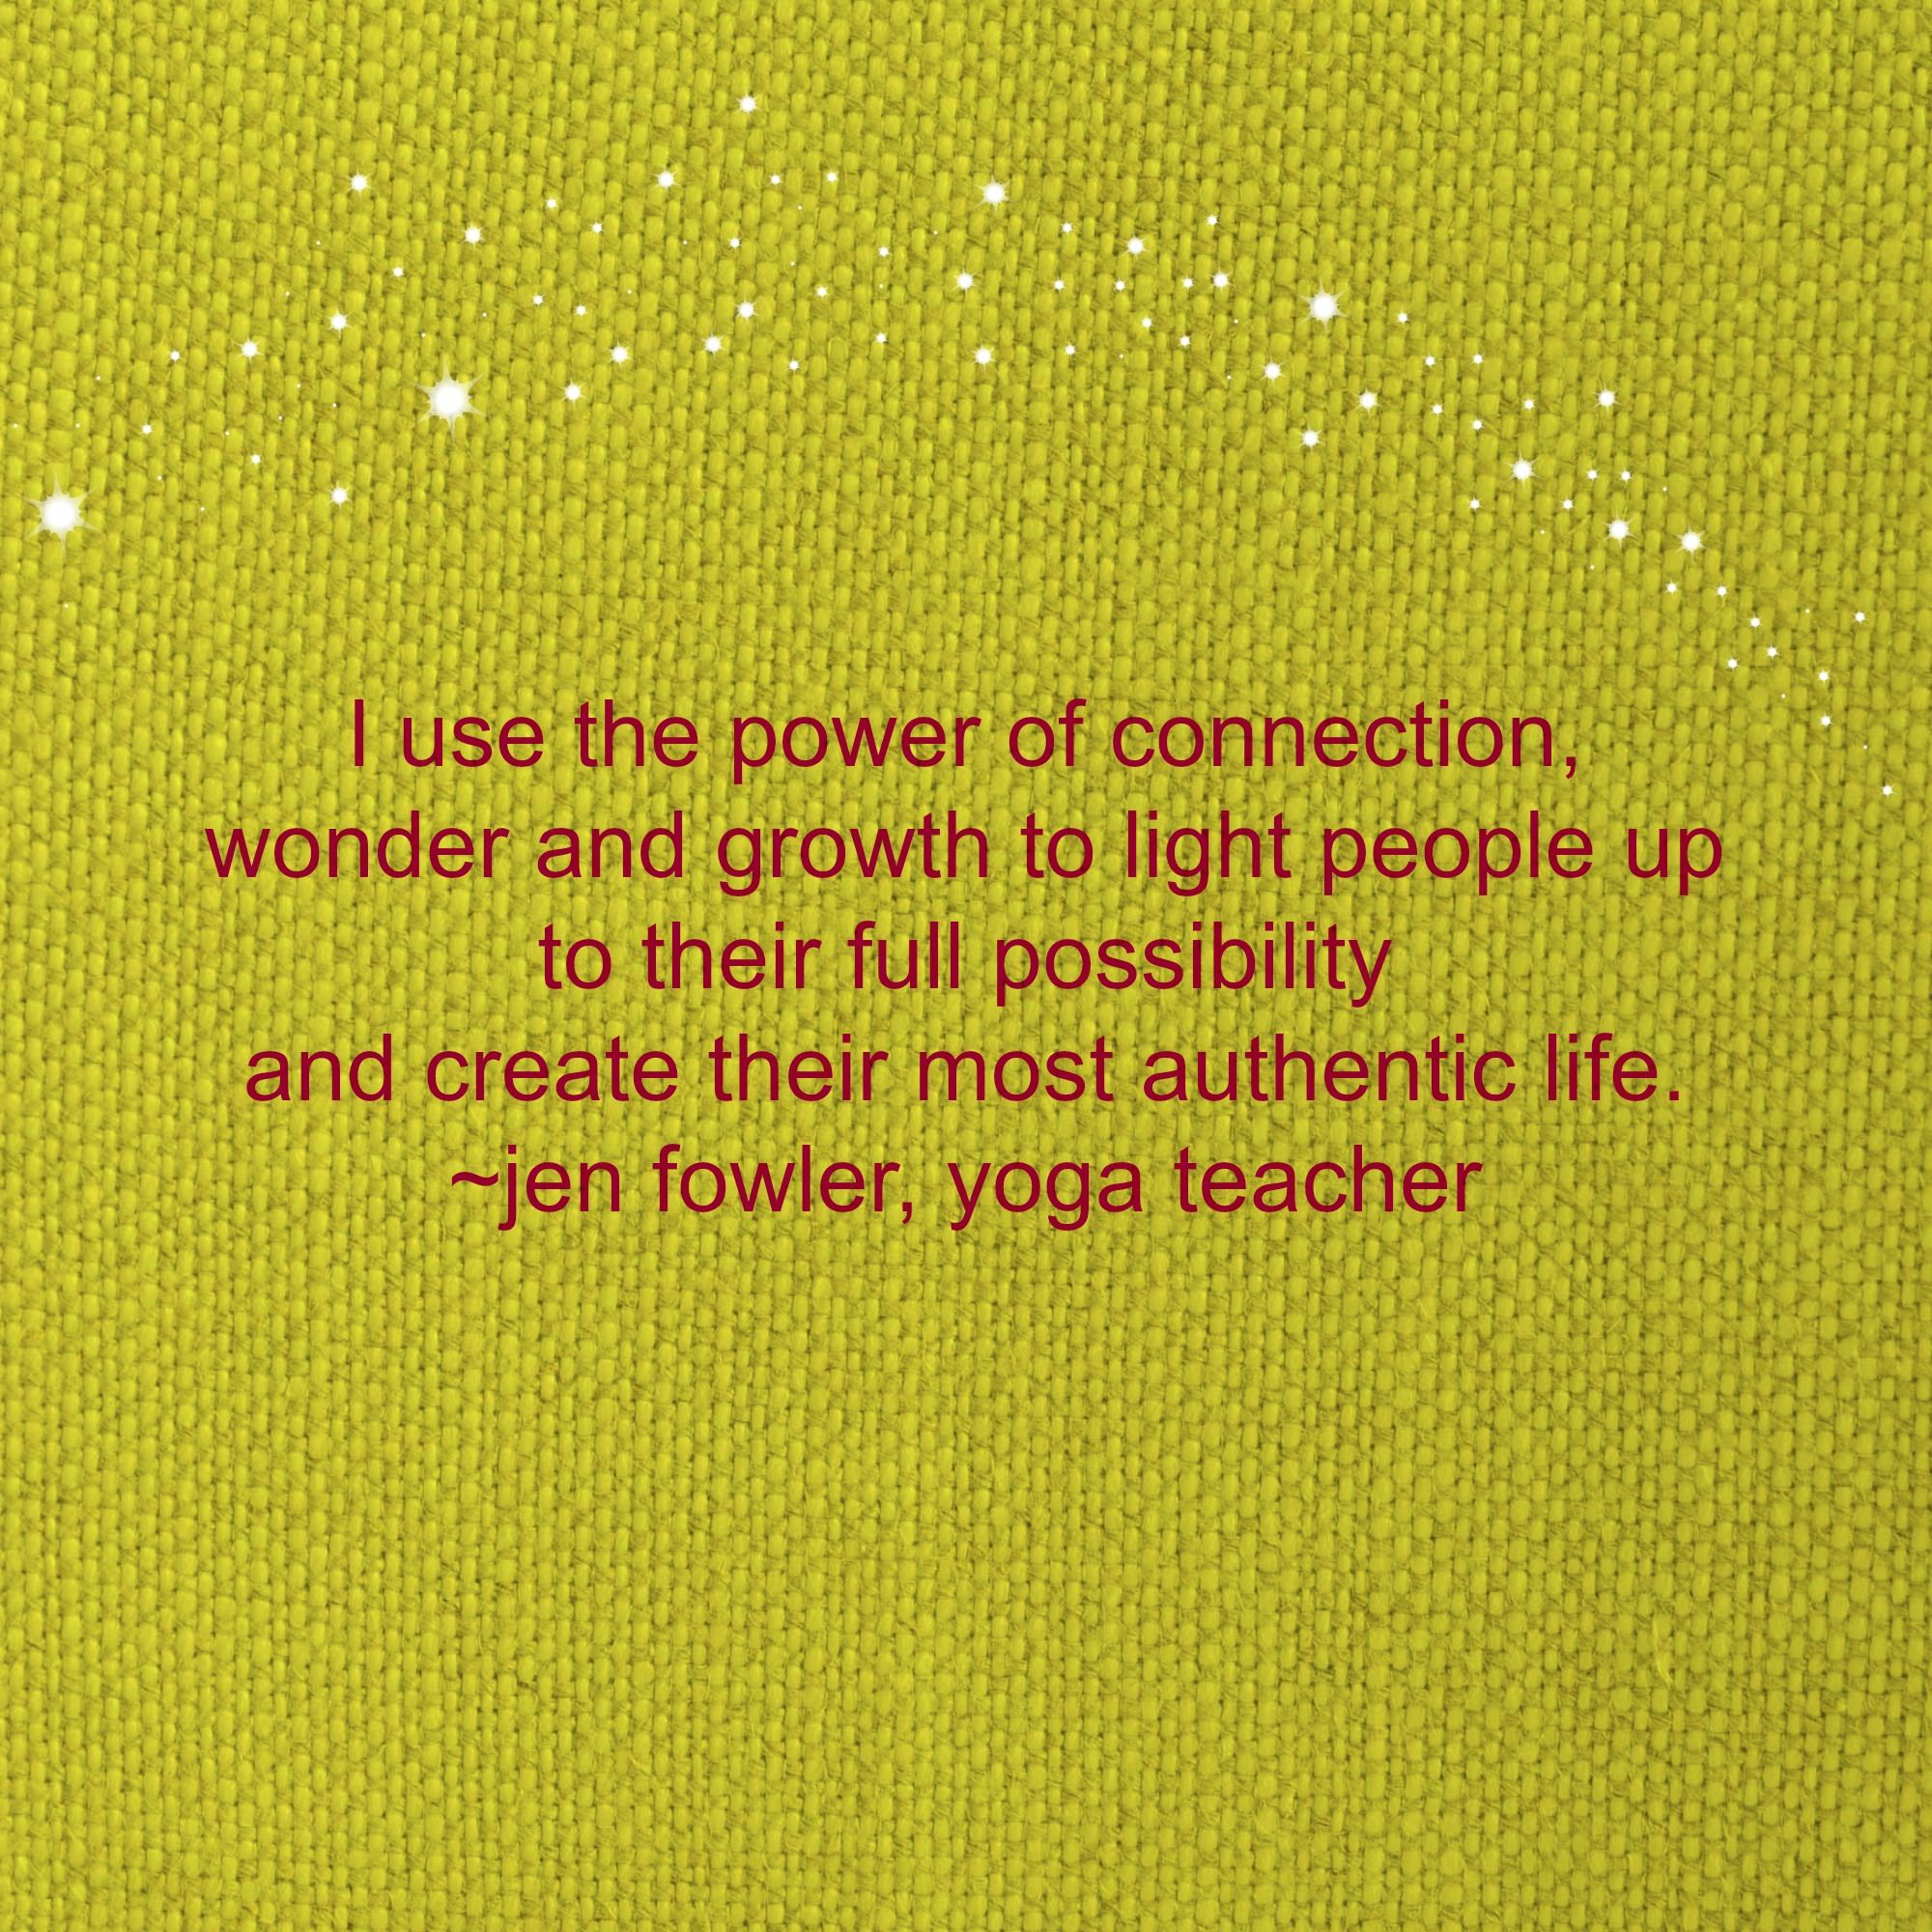 Personal Mission Statement Yahoo Image Search Result Yoga